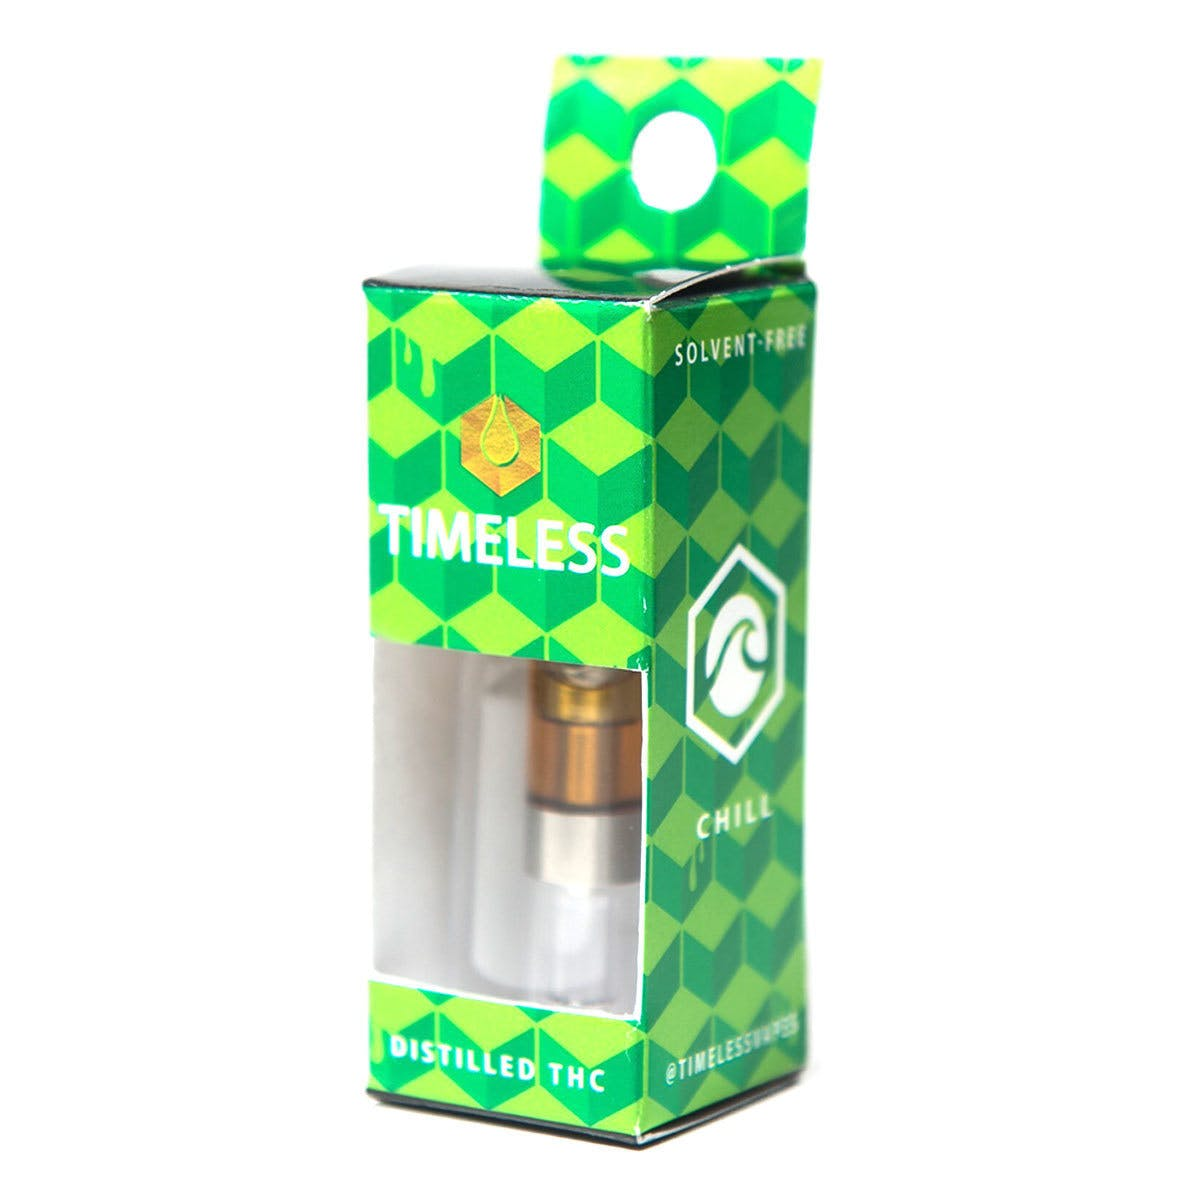 concentrate-timeless-vapes-500mg-cookies-vape-cartridge-chill